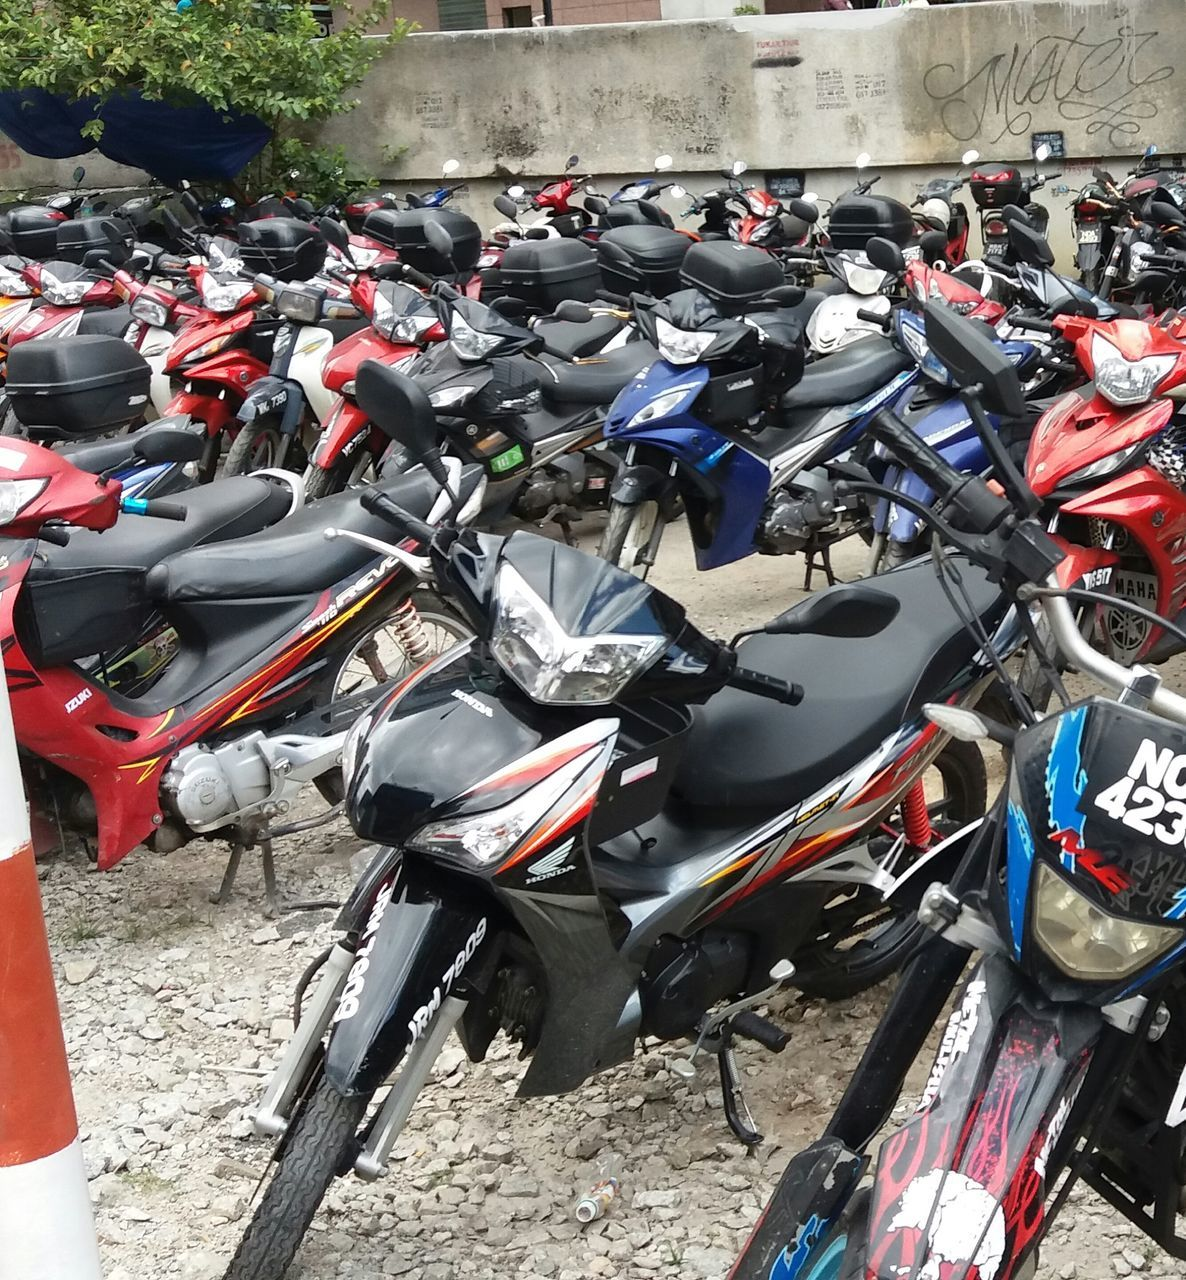 transportation, mode of transport, stationary, land vehicle, bicycle, motorcycle, day, outdoors, parking, scooter, no people, bicycle rack